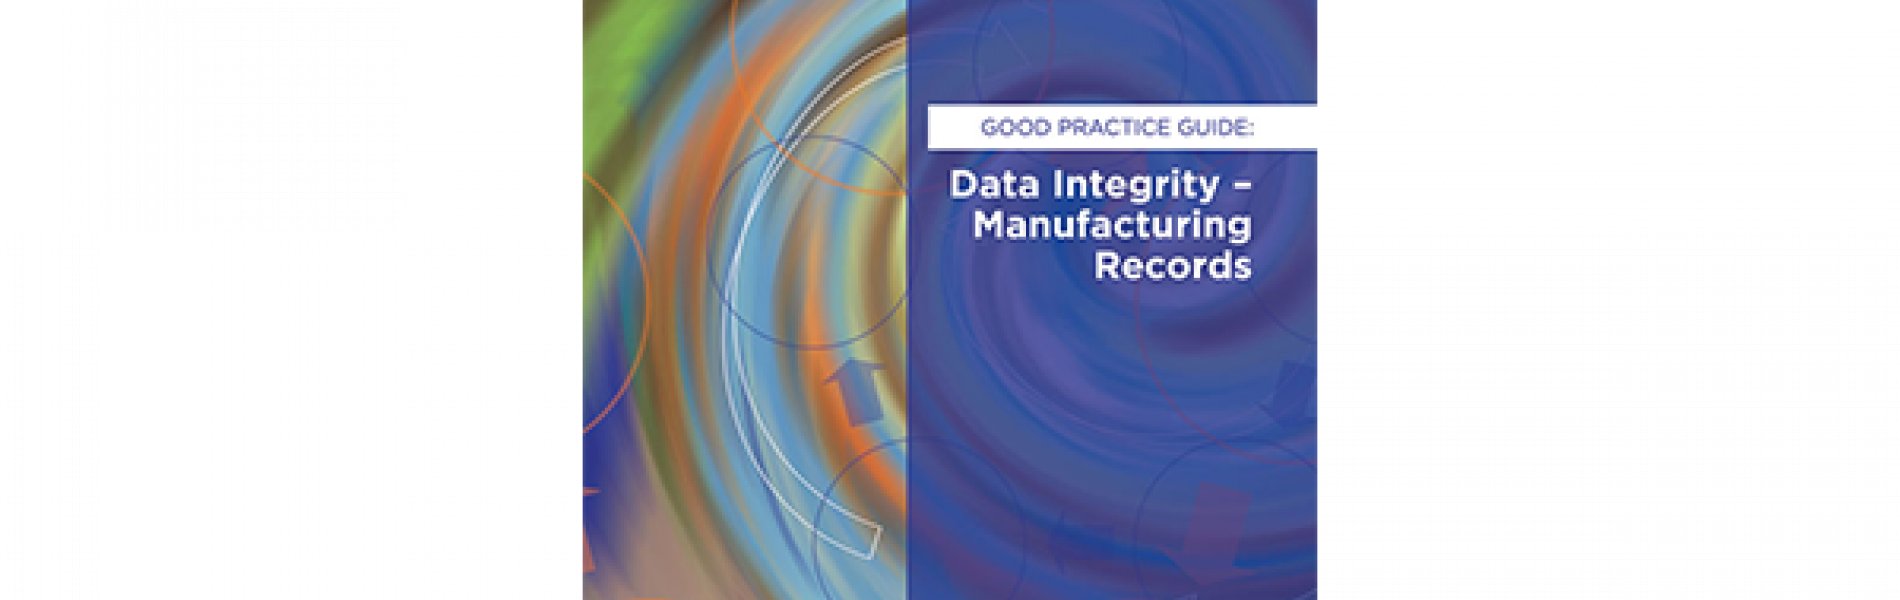 GAMP RDI Good Practice Guide: Data Integrity - Manufacturing Records